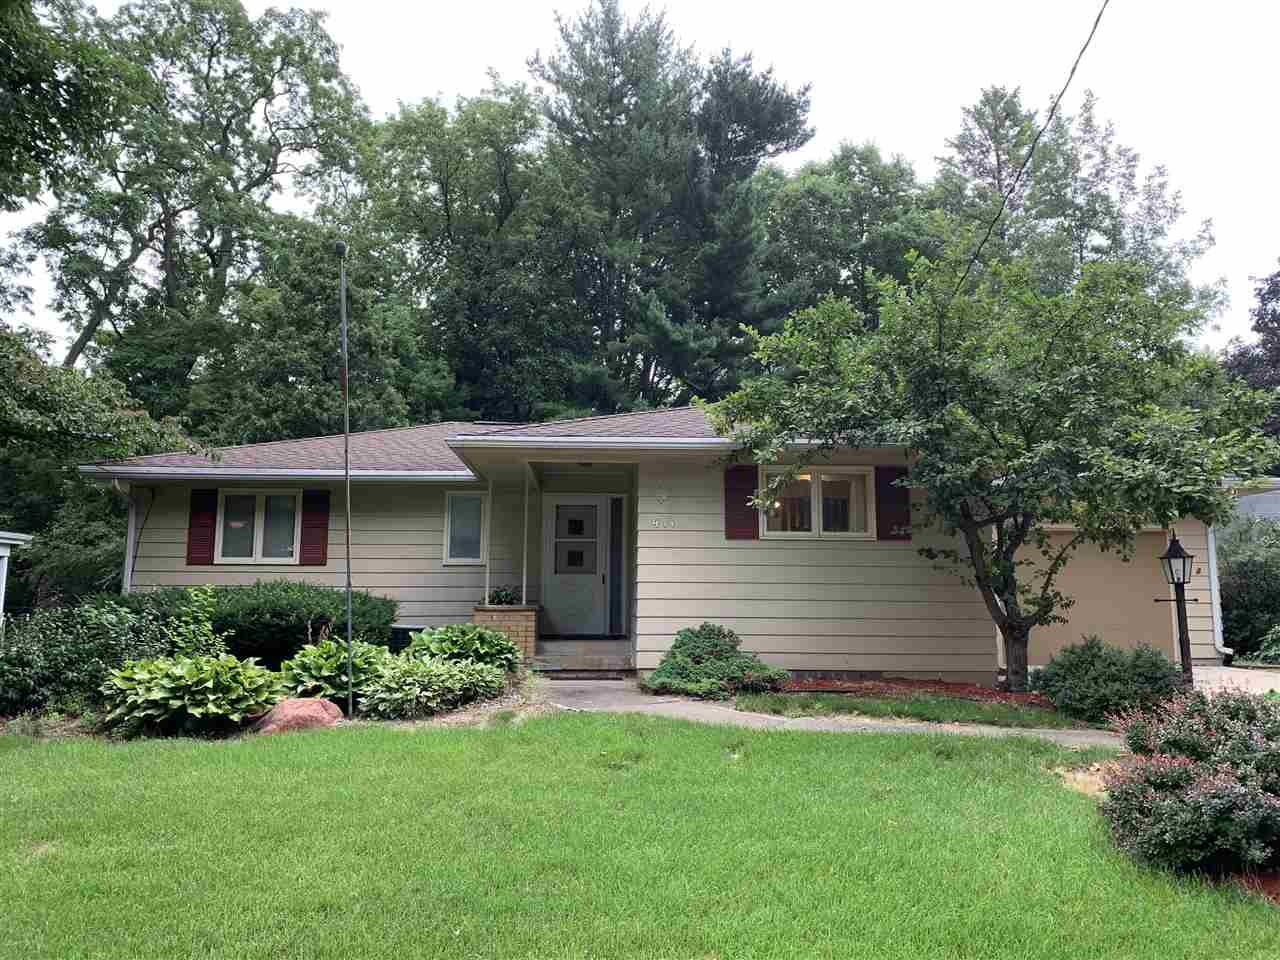 411 Orchard Dr, Madison, WI 53711 - #: 1914105